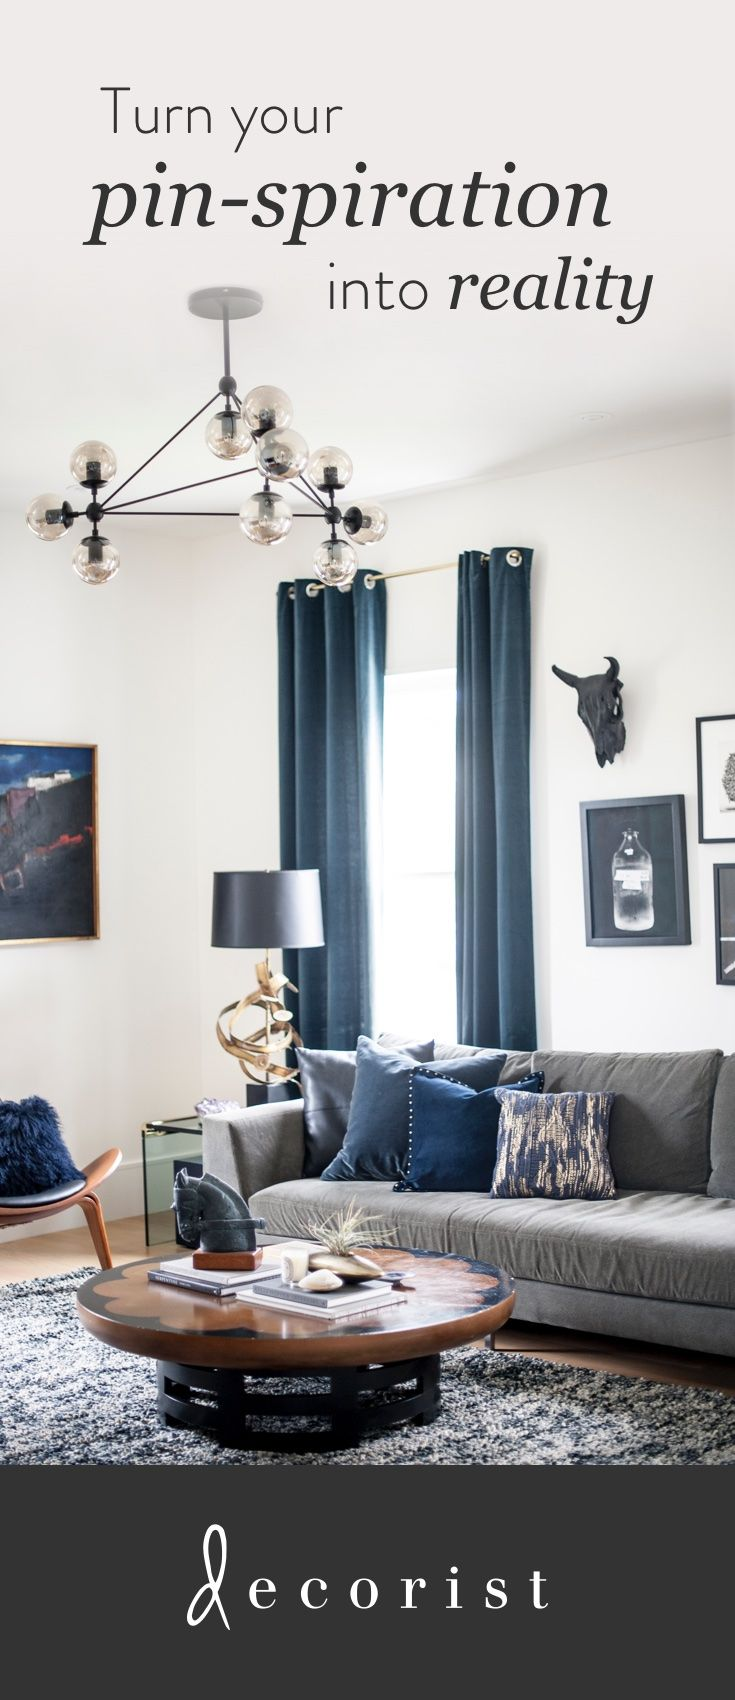 Is your home as beautiful as your Pinterest boards? Do you have tons of home decor pins but don't know how to turn your ideas into reality? @decorist can help. Design your room in your style and budget right from your Pinterest page.